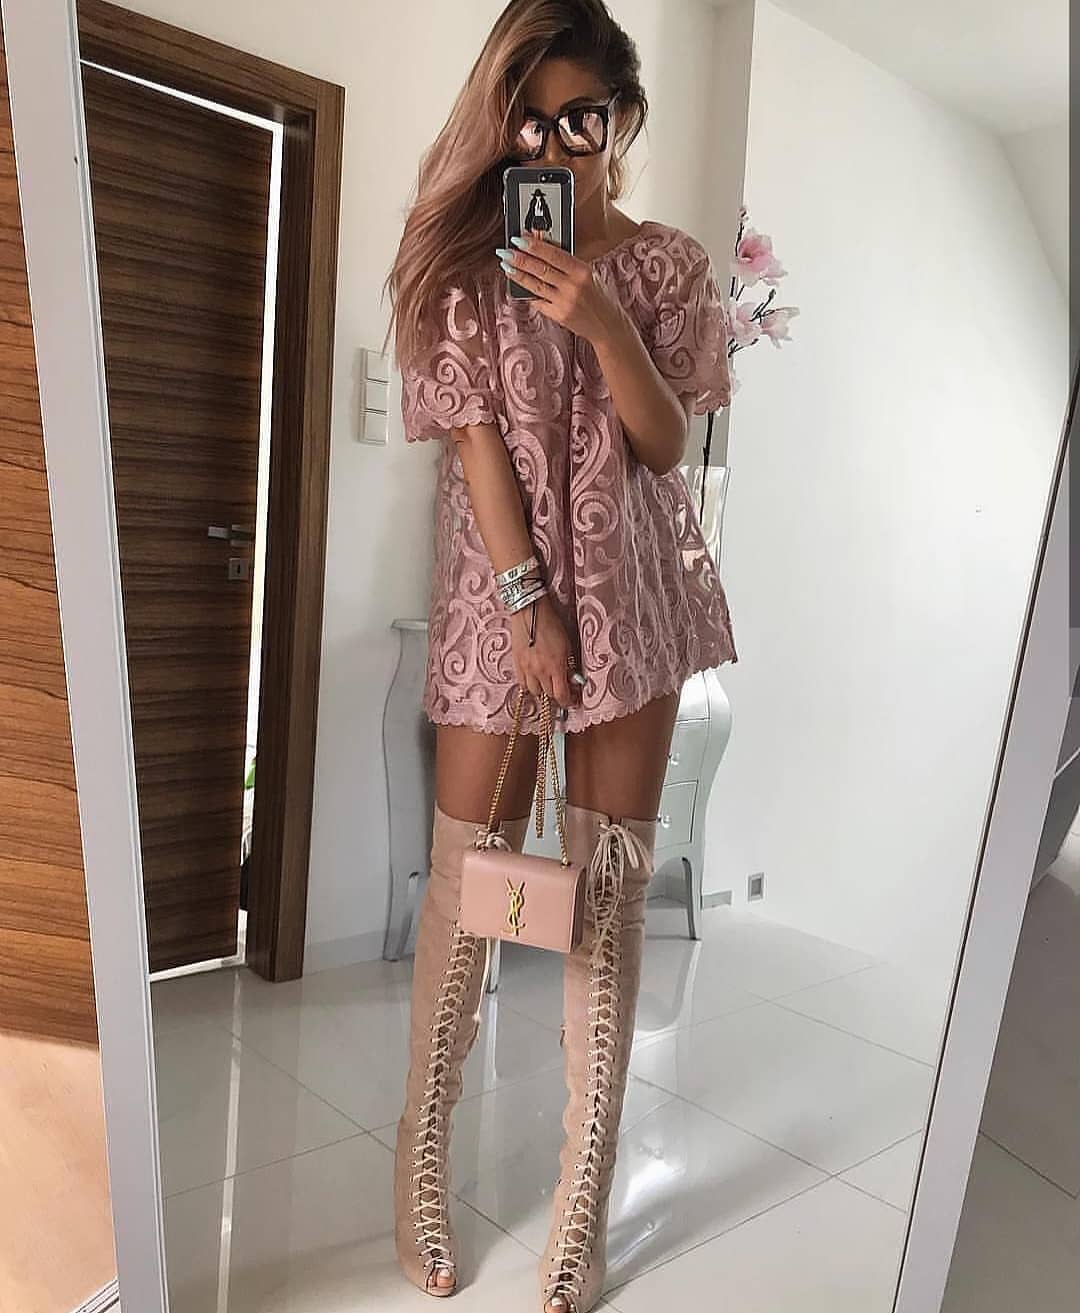 Blush Lace Dress With OTK Lace-Up Boots For Summer 2020